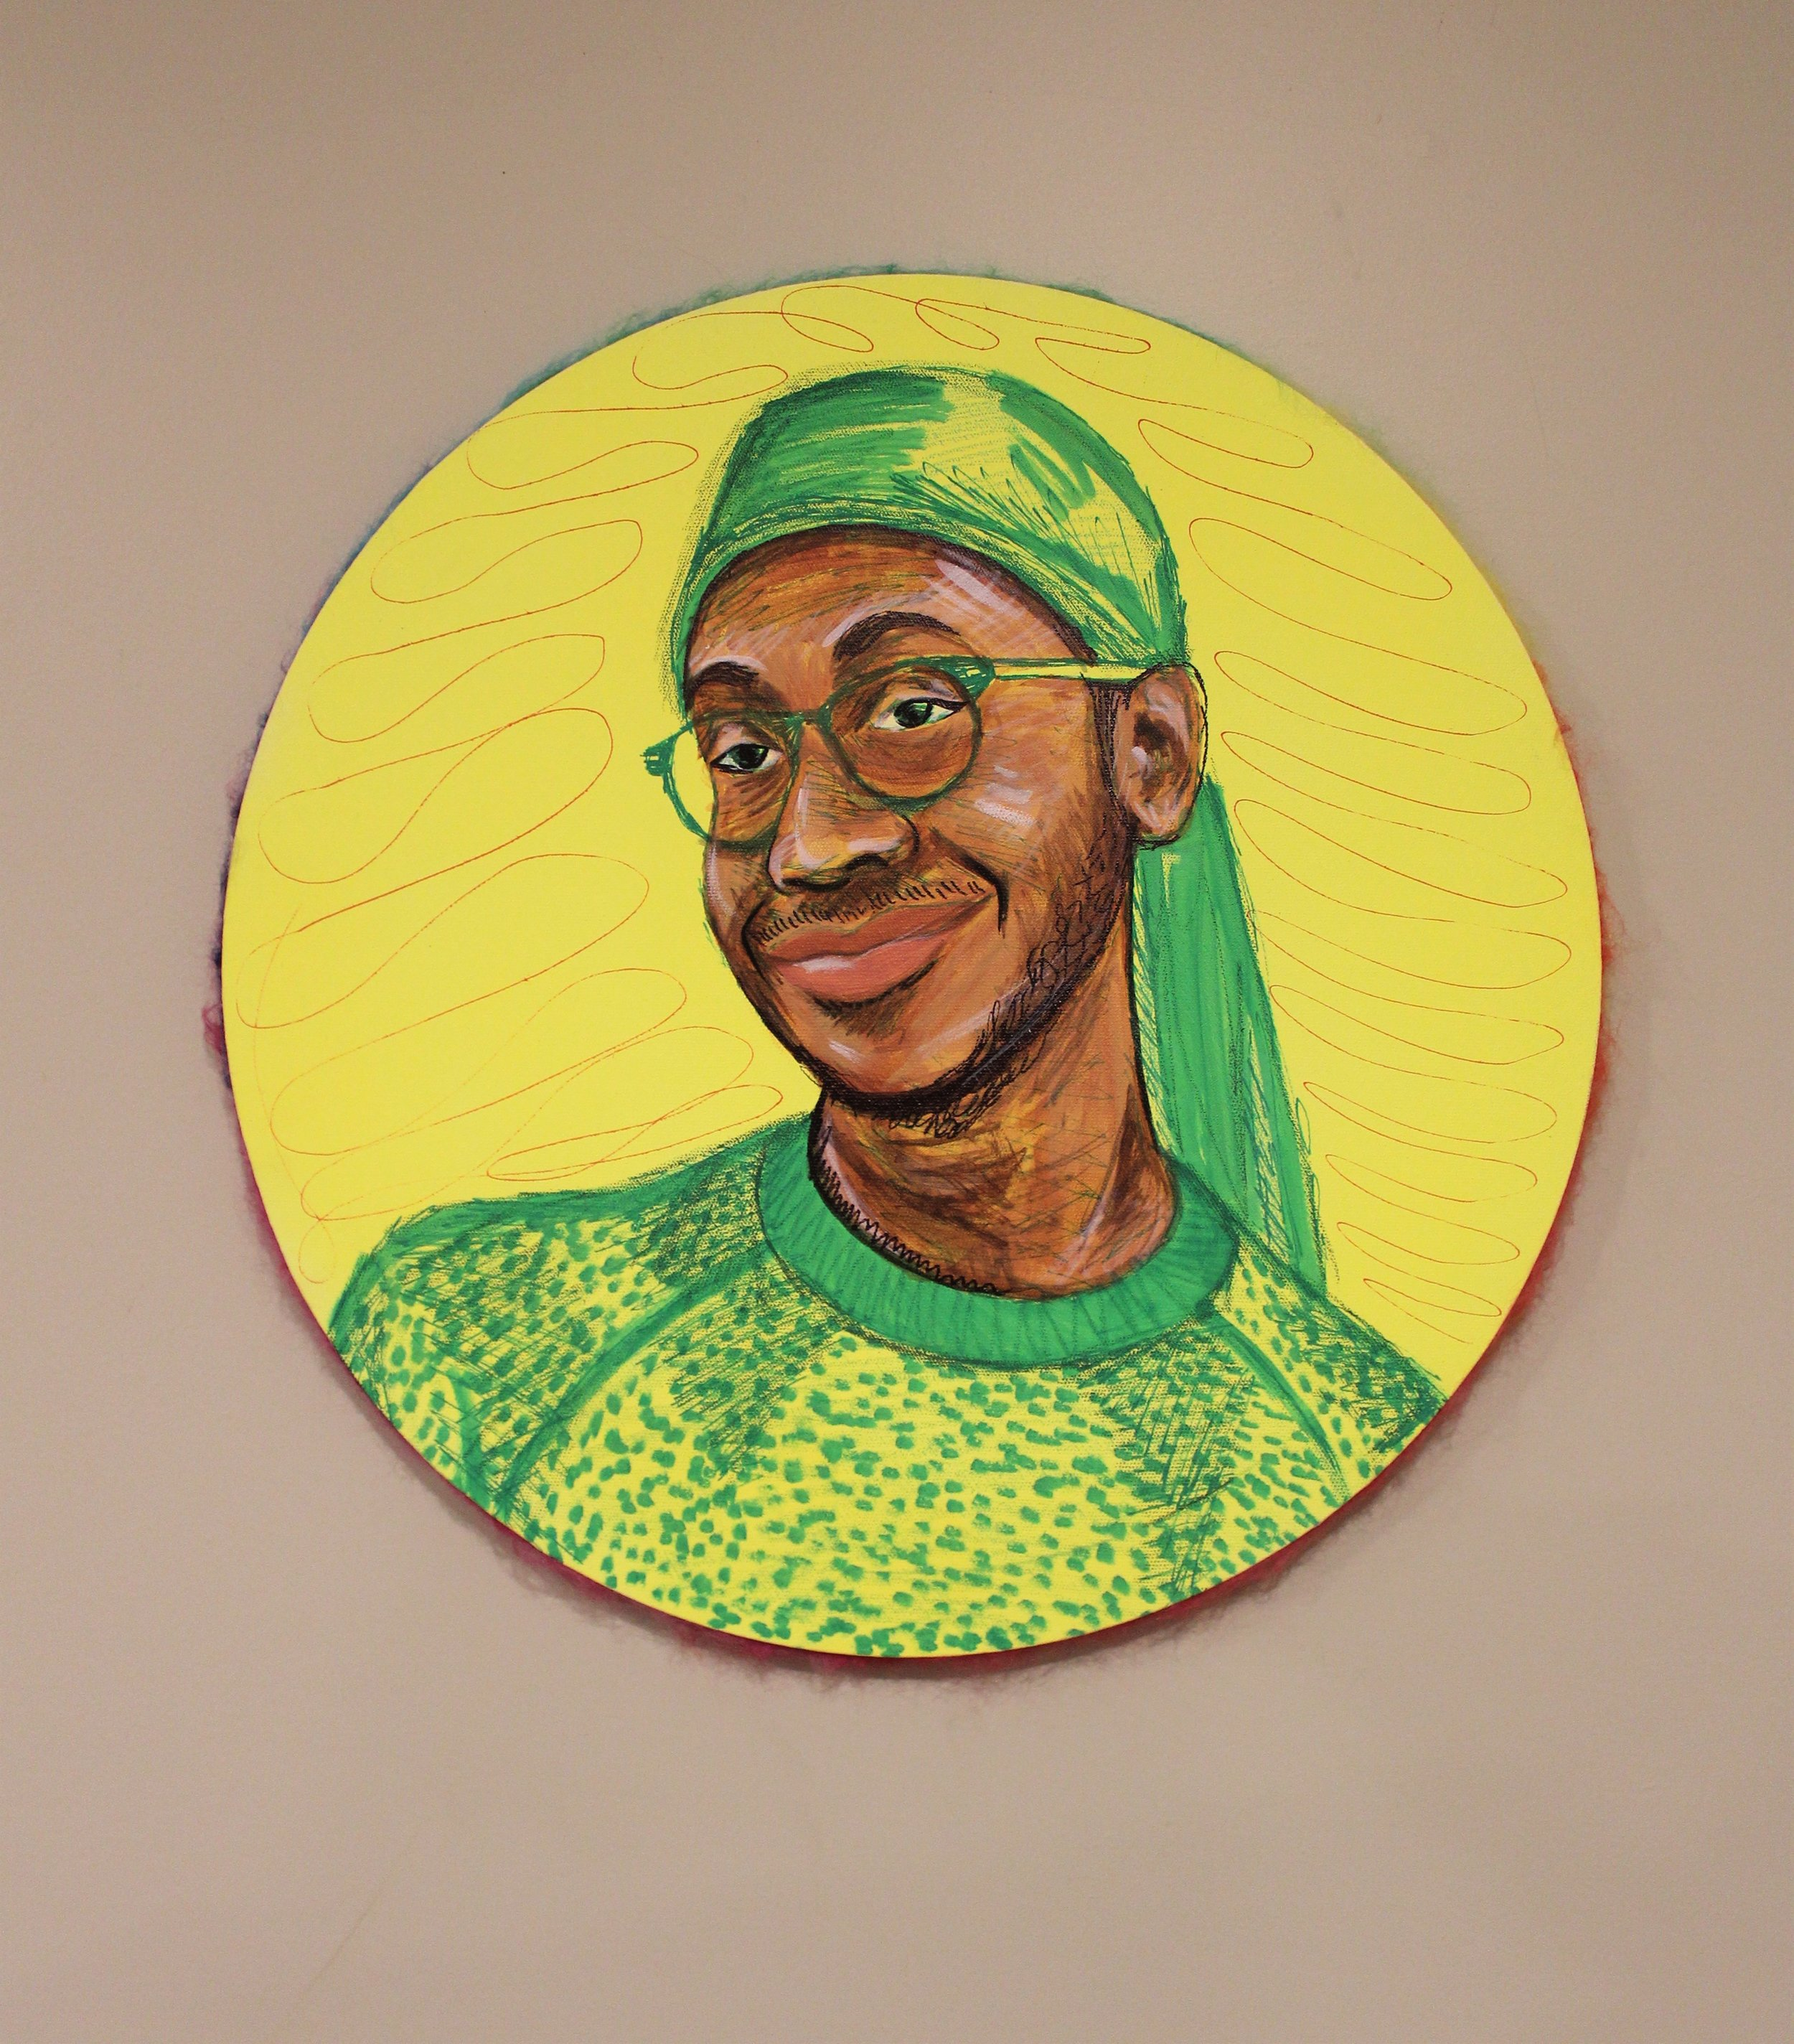 BEAMING: Aaron, 2019, acrylic, crayon and yarn on canvas, 24in round